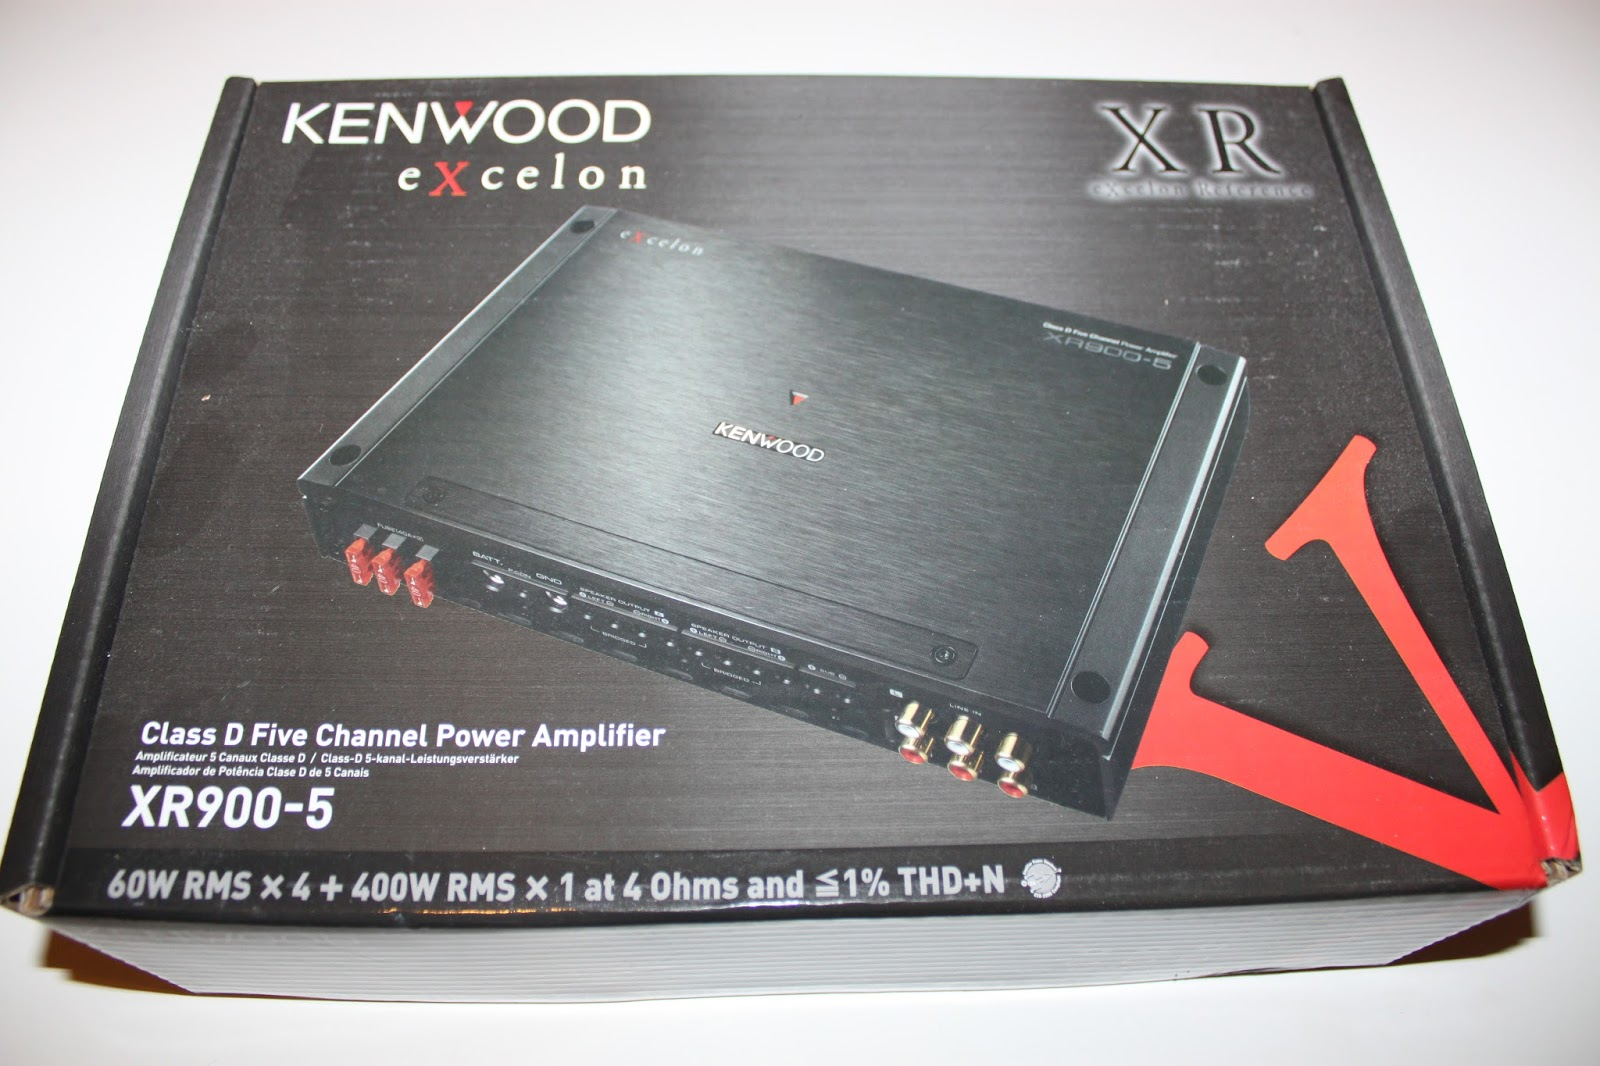 Stereowise Plus: Kenwood Excelon XR900-5 Cl D 5 channel ... on